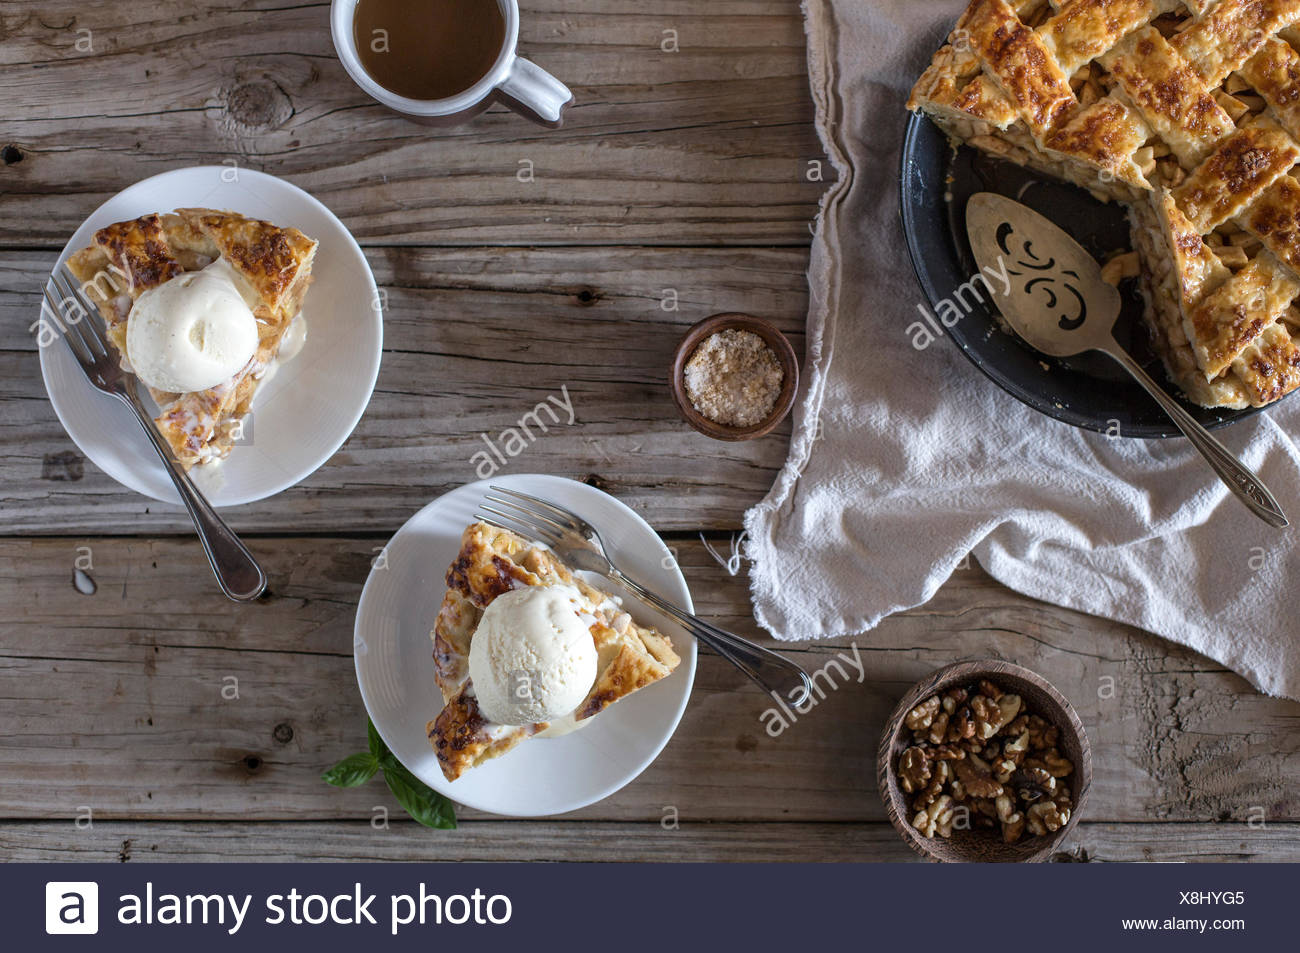 Two slices of a caramel apple pie (topped with vanilla ice cream) is displayed on a farm table. - Stock Image